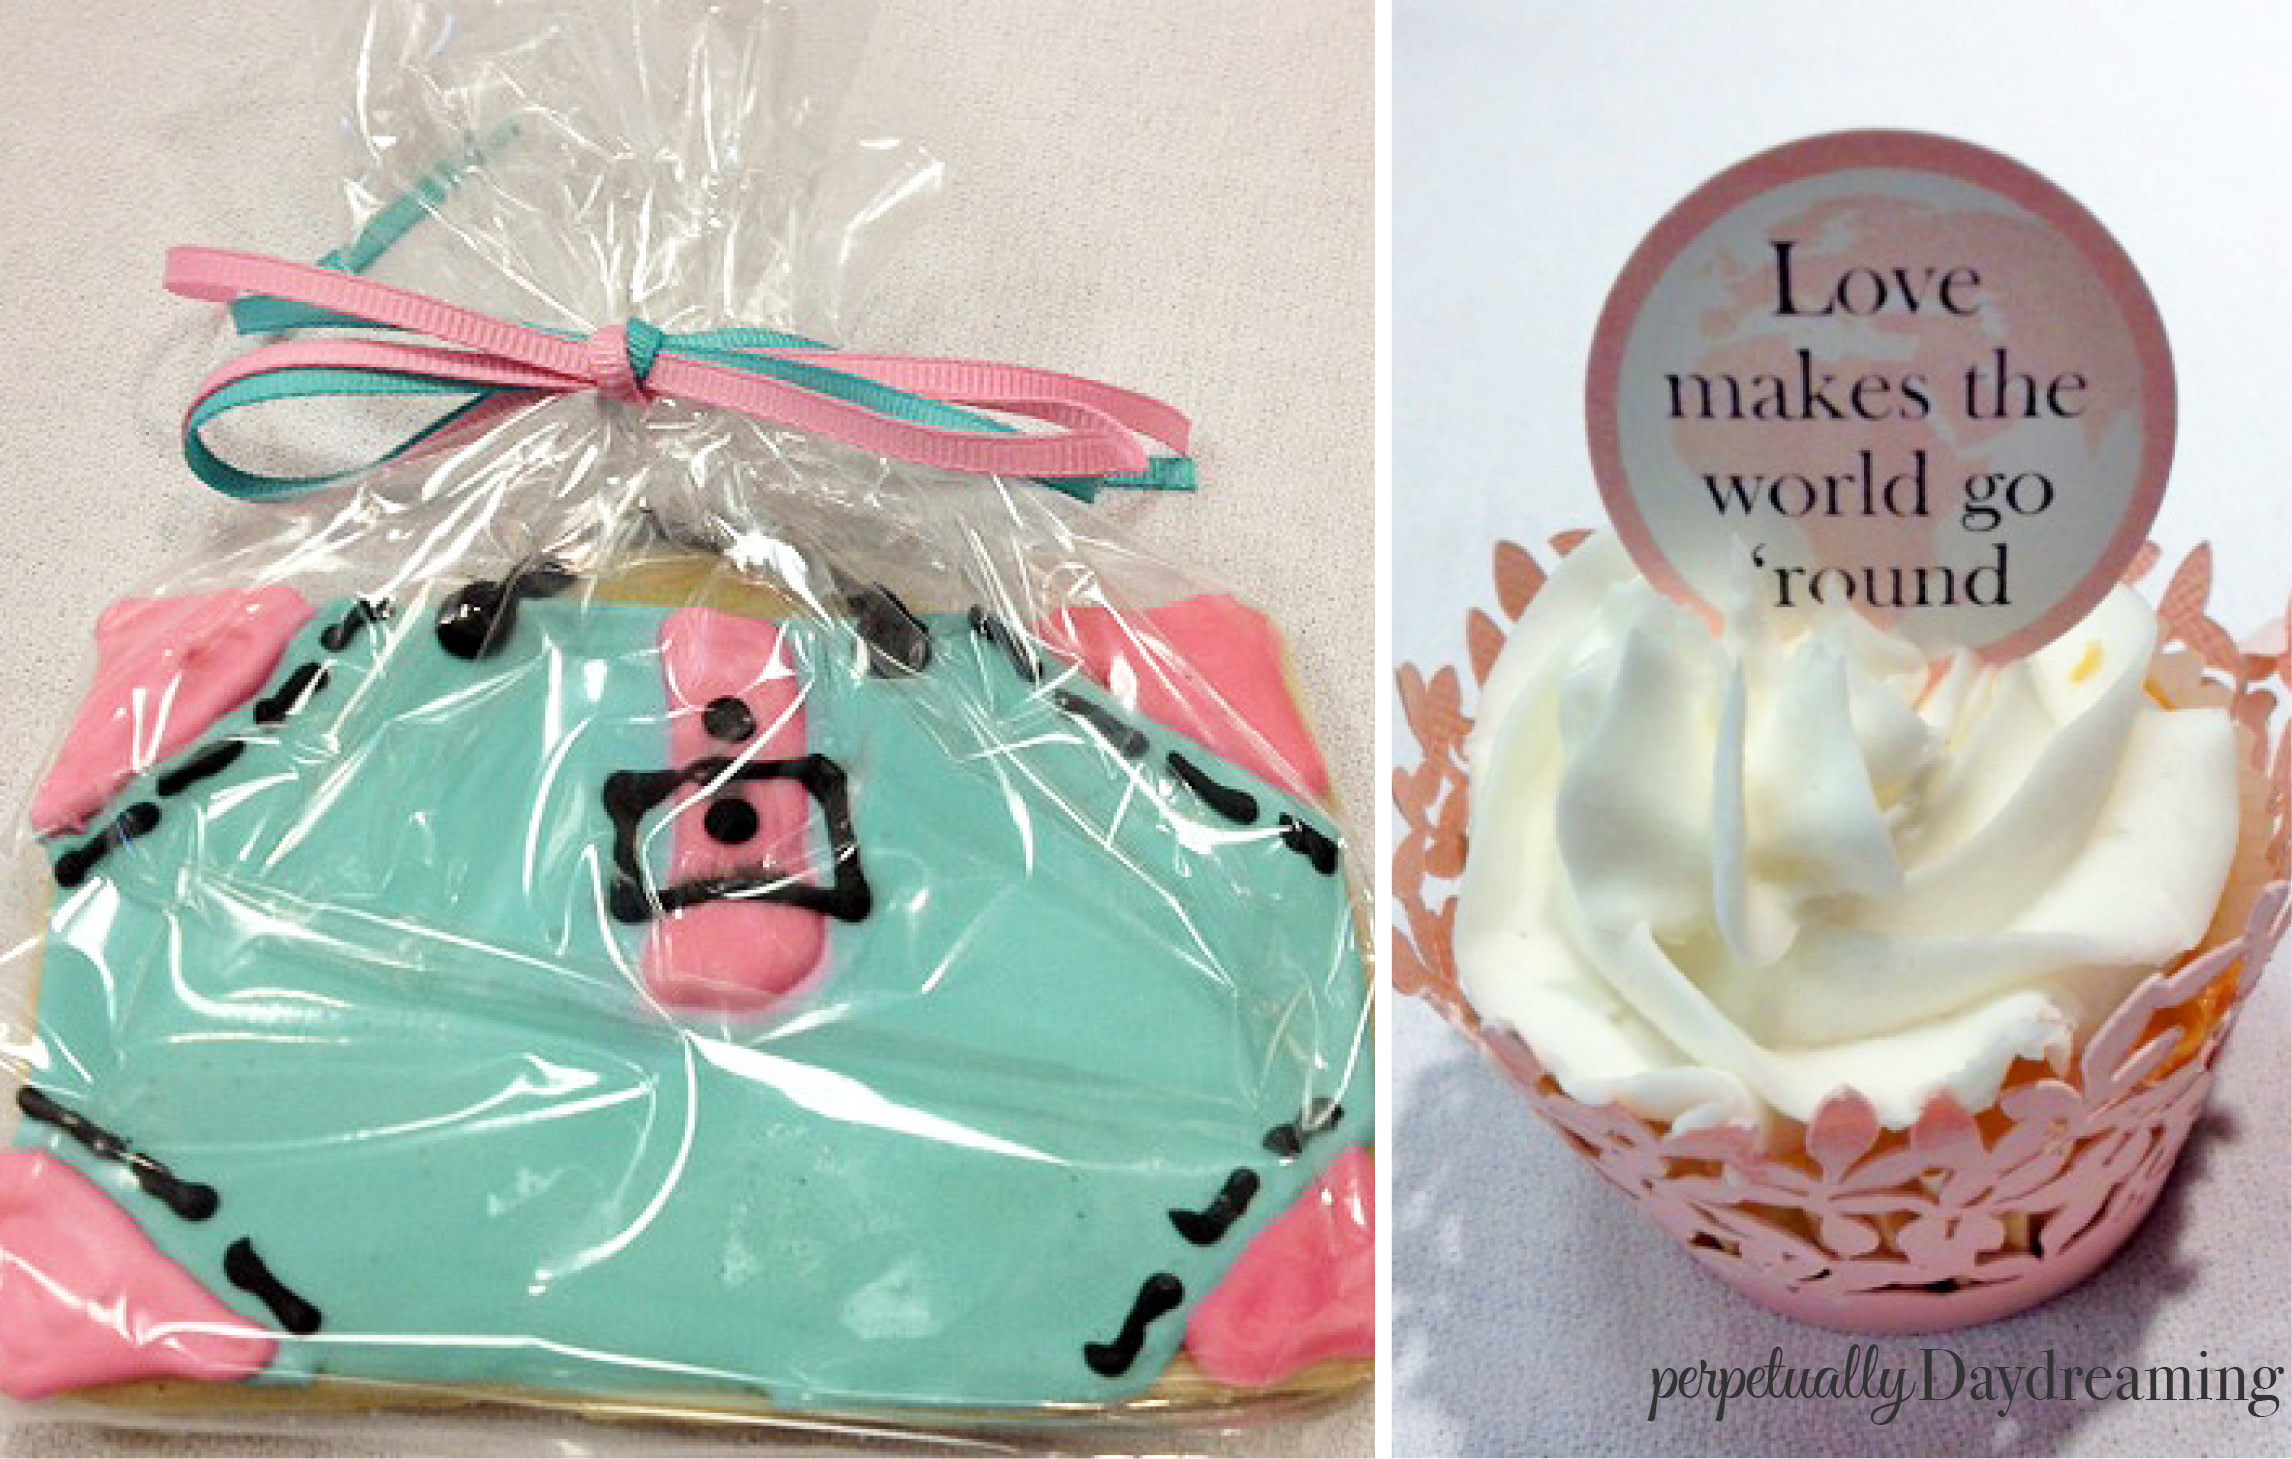 My Travel Themed Bridal Shower - Perpetually Daydreaming